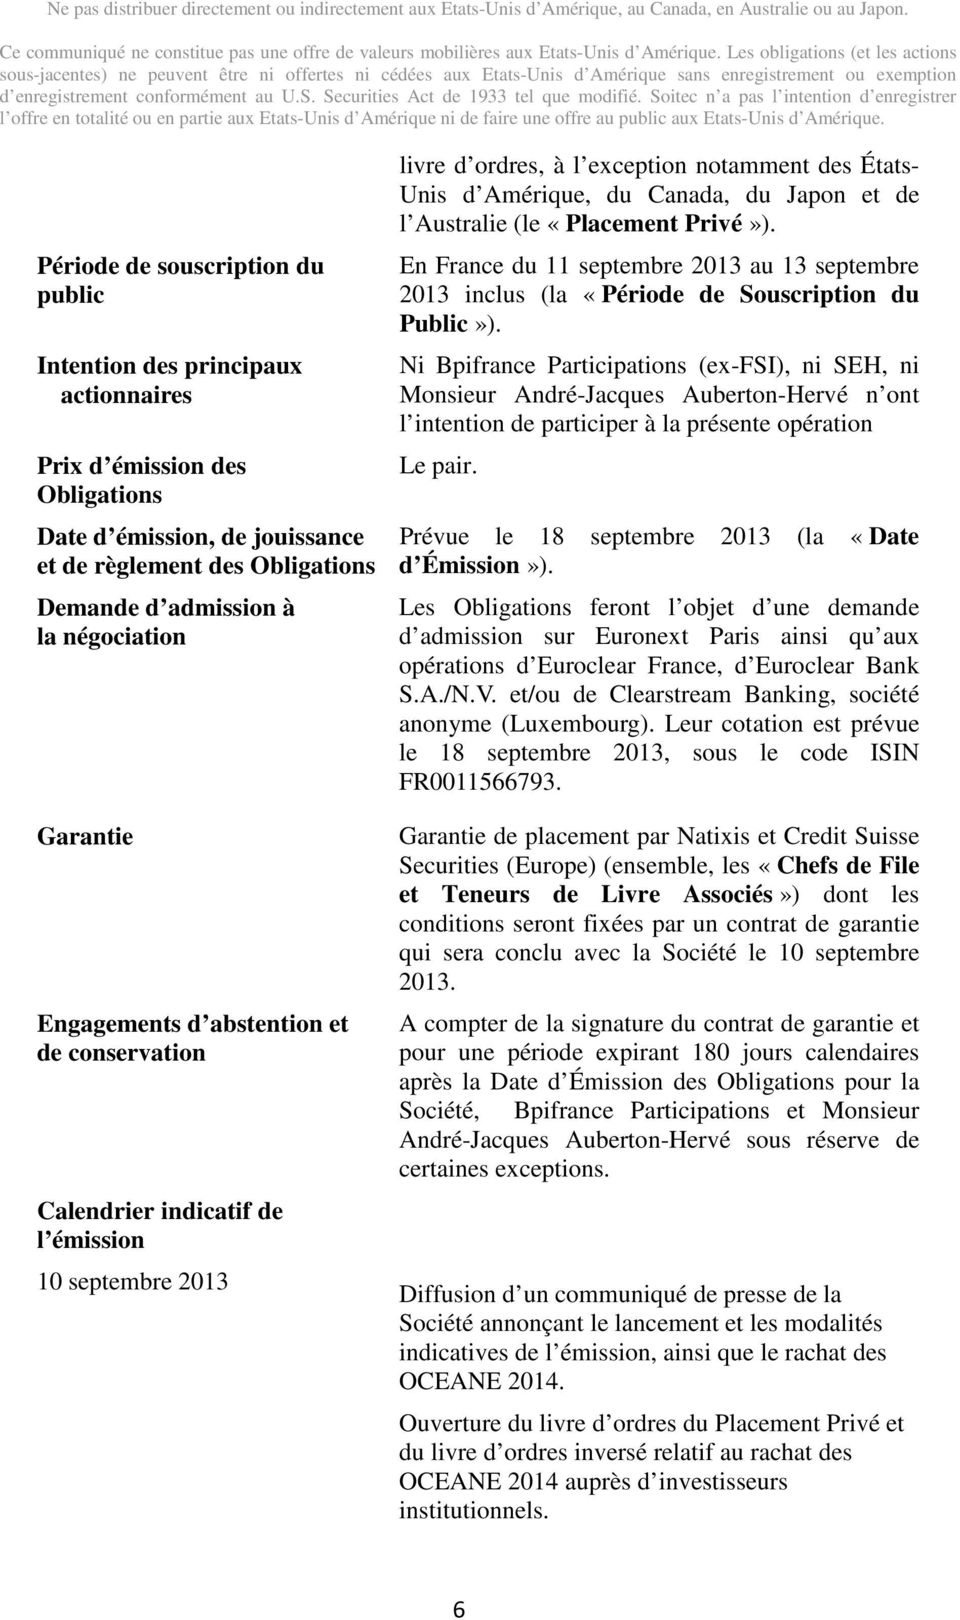 Japon et de l Australie (le «Placement Privé»). En France du 11 septembre 2013 au 13 septembre 2013 inclus (la «Période de Souscription du Public»).